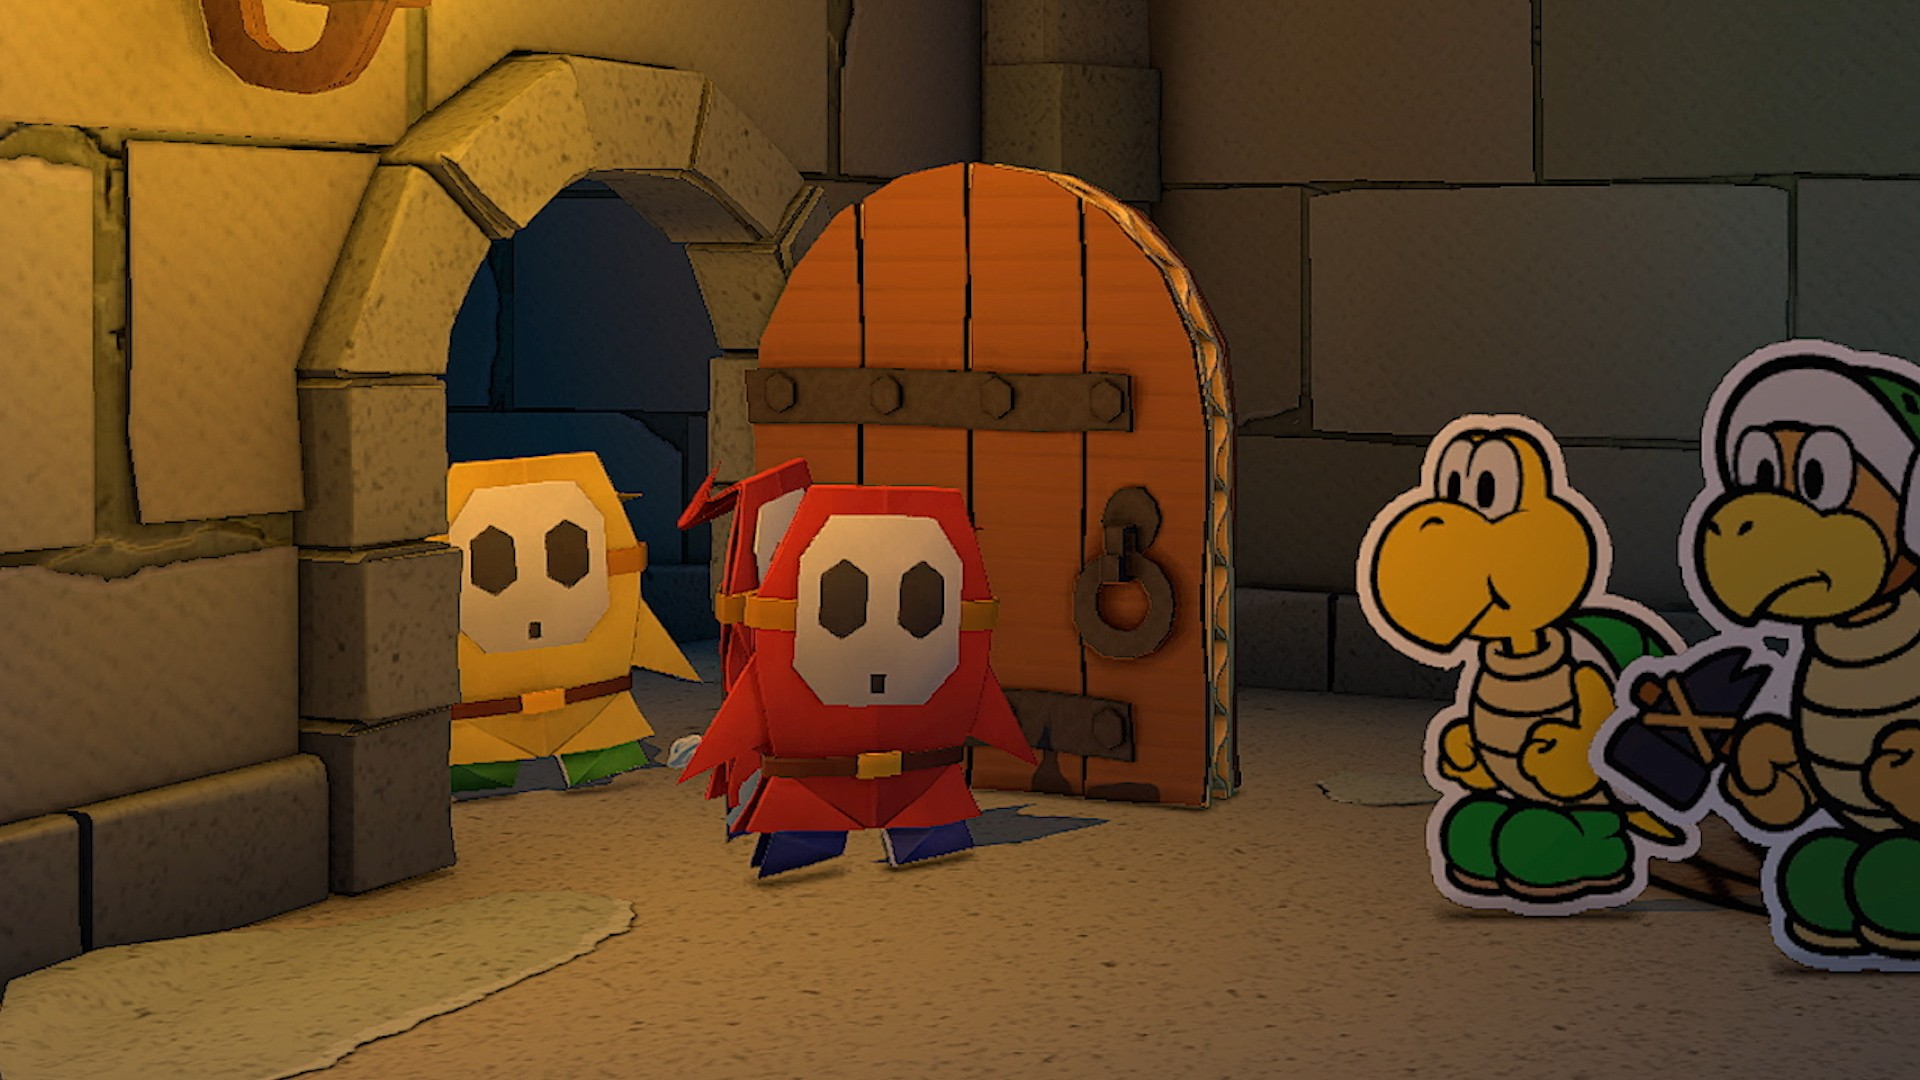 Paper Mario producer says that the series subsides on easy to understand, universal humor screenshot